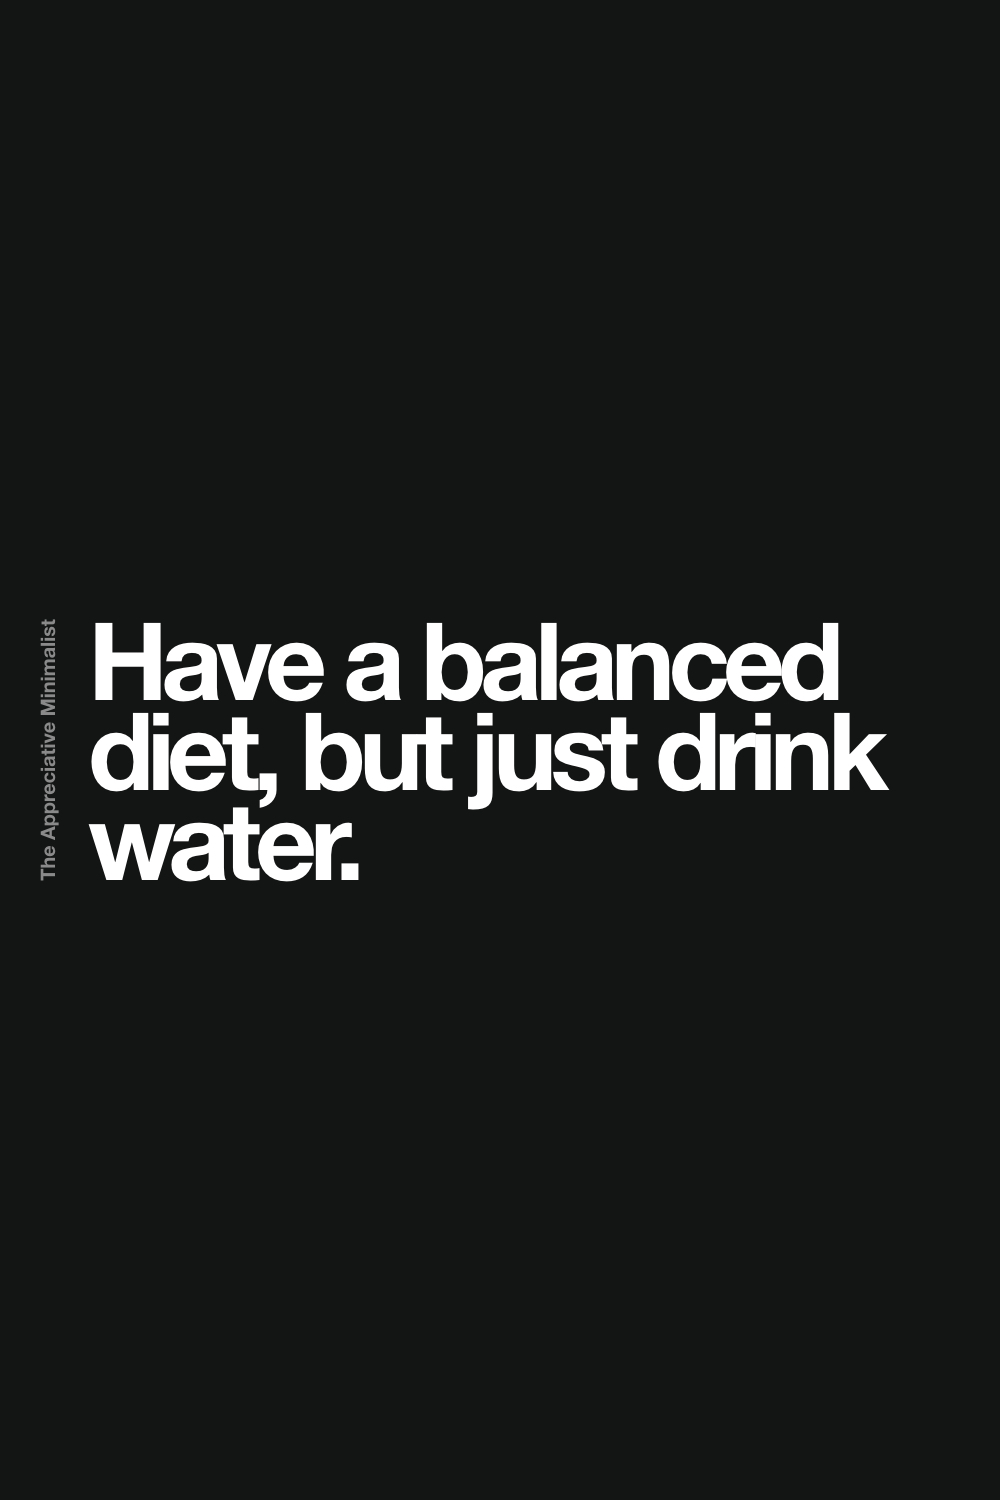 Have a balanced diet, but just drink water.